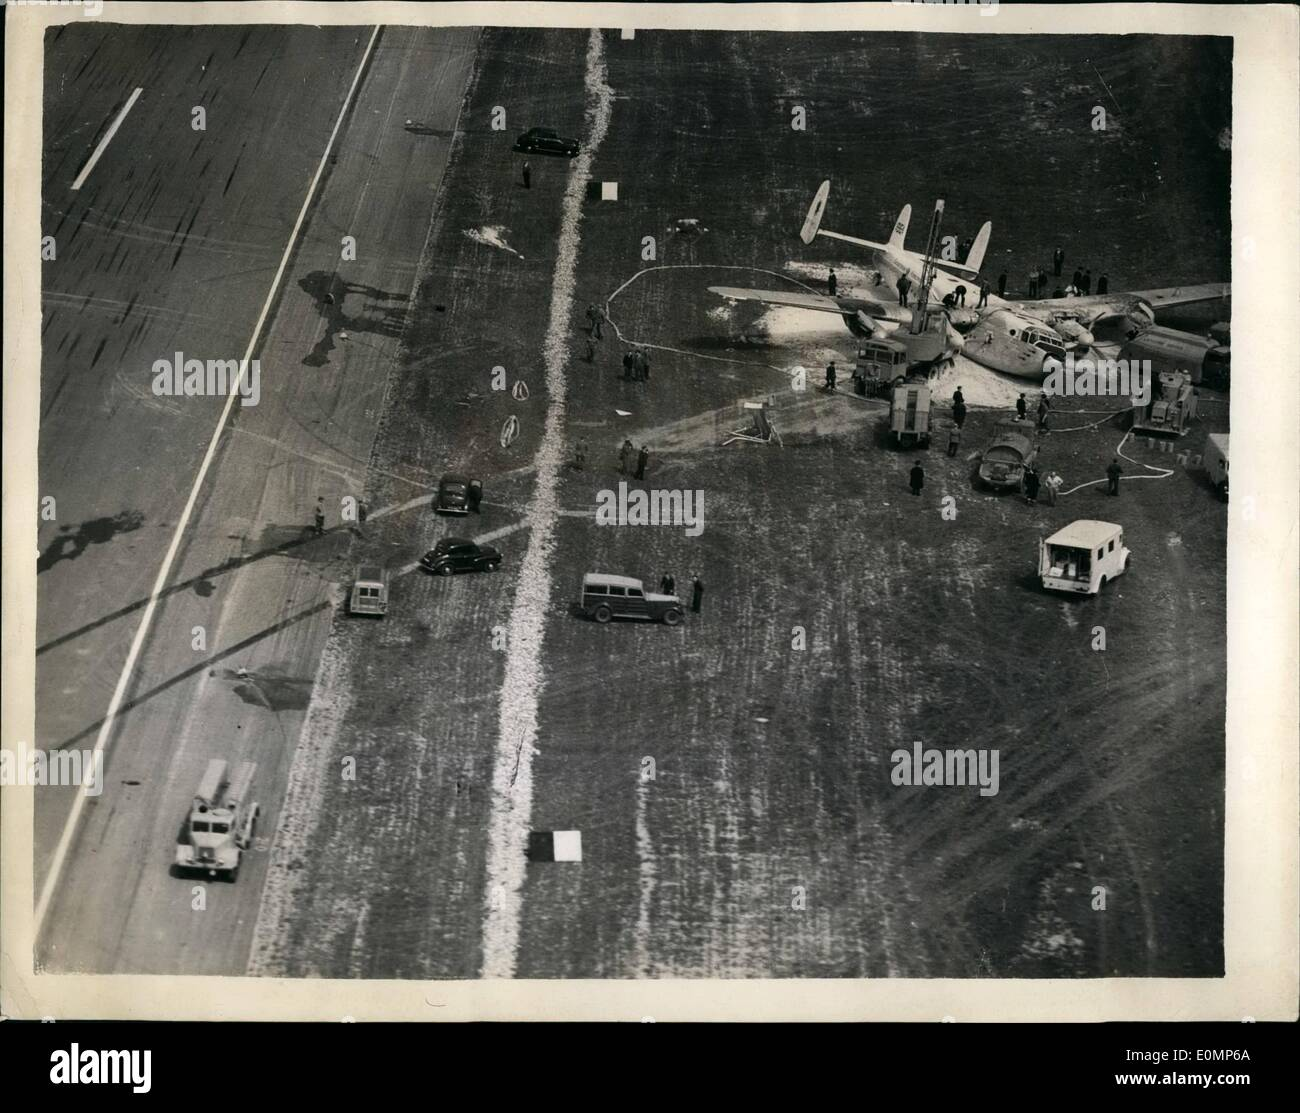 Apr. 04, 1956 - Two die in airliner crash.: An R.A>F. man and a little girl were killed - and four injured when an airliner with 54 people aboard-crashed at Stansted Airport, Essex today. The four-engined York airliner was taking off with families and Servicemen for Cypm's and Irak when it plunged off the runway. Women with babies in their arms scrambled out as patrol gushed from the plane's shattered tanks. Dense petrol fumes turned the insed of the plane into a gas chamber. Firemen pumped oxygen into the wreckage to keep the trapped people alive - Stock Image